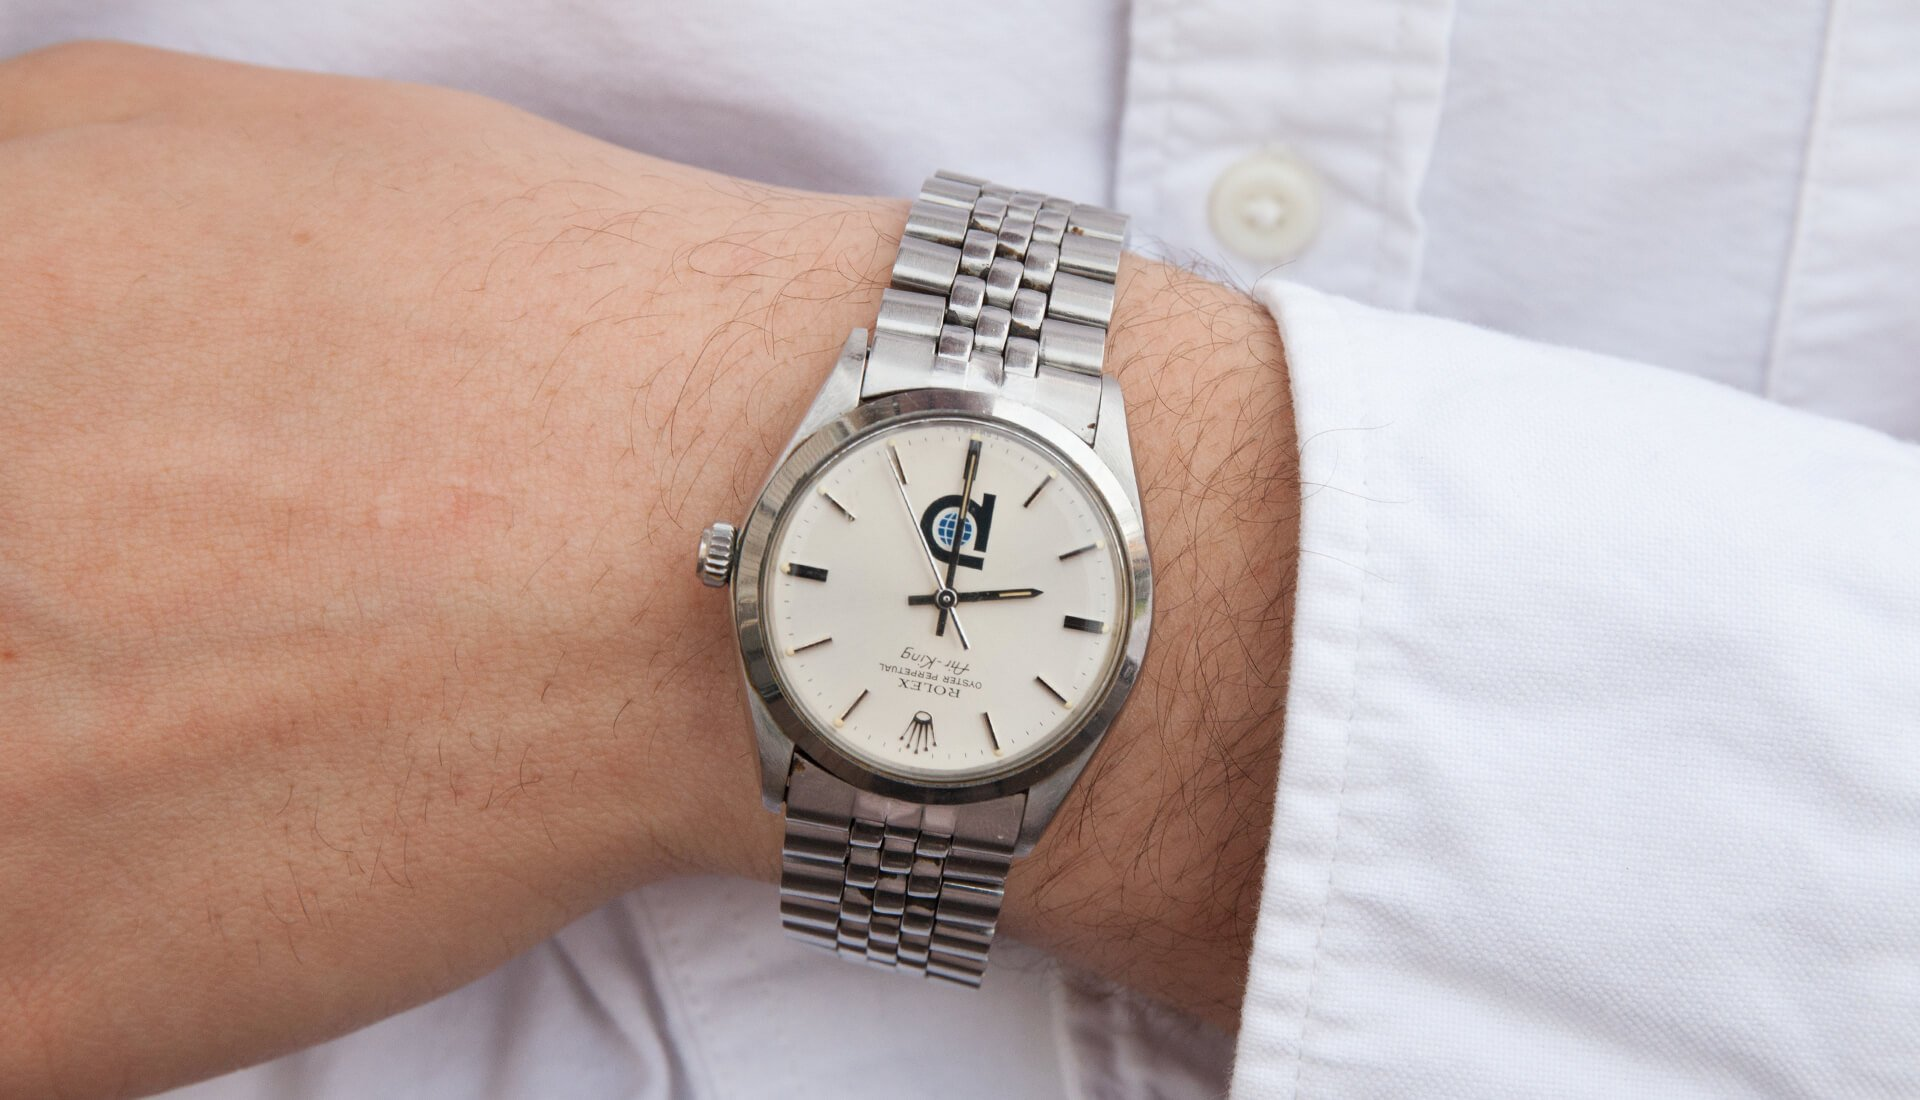 In The Metal: Omega Seamaster, Constellation and Rolex Air King